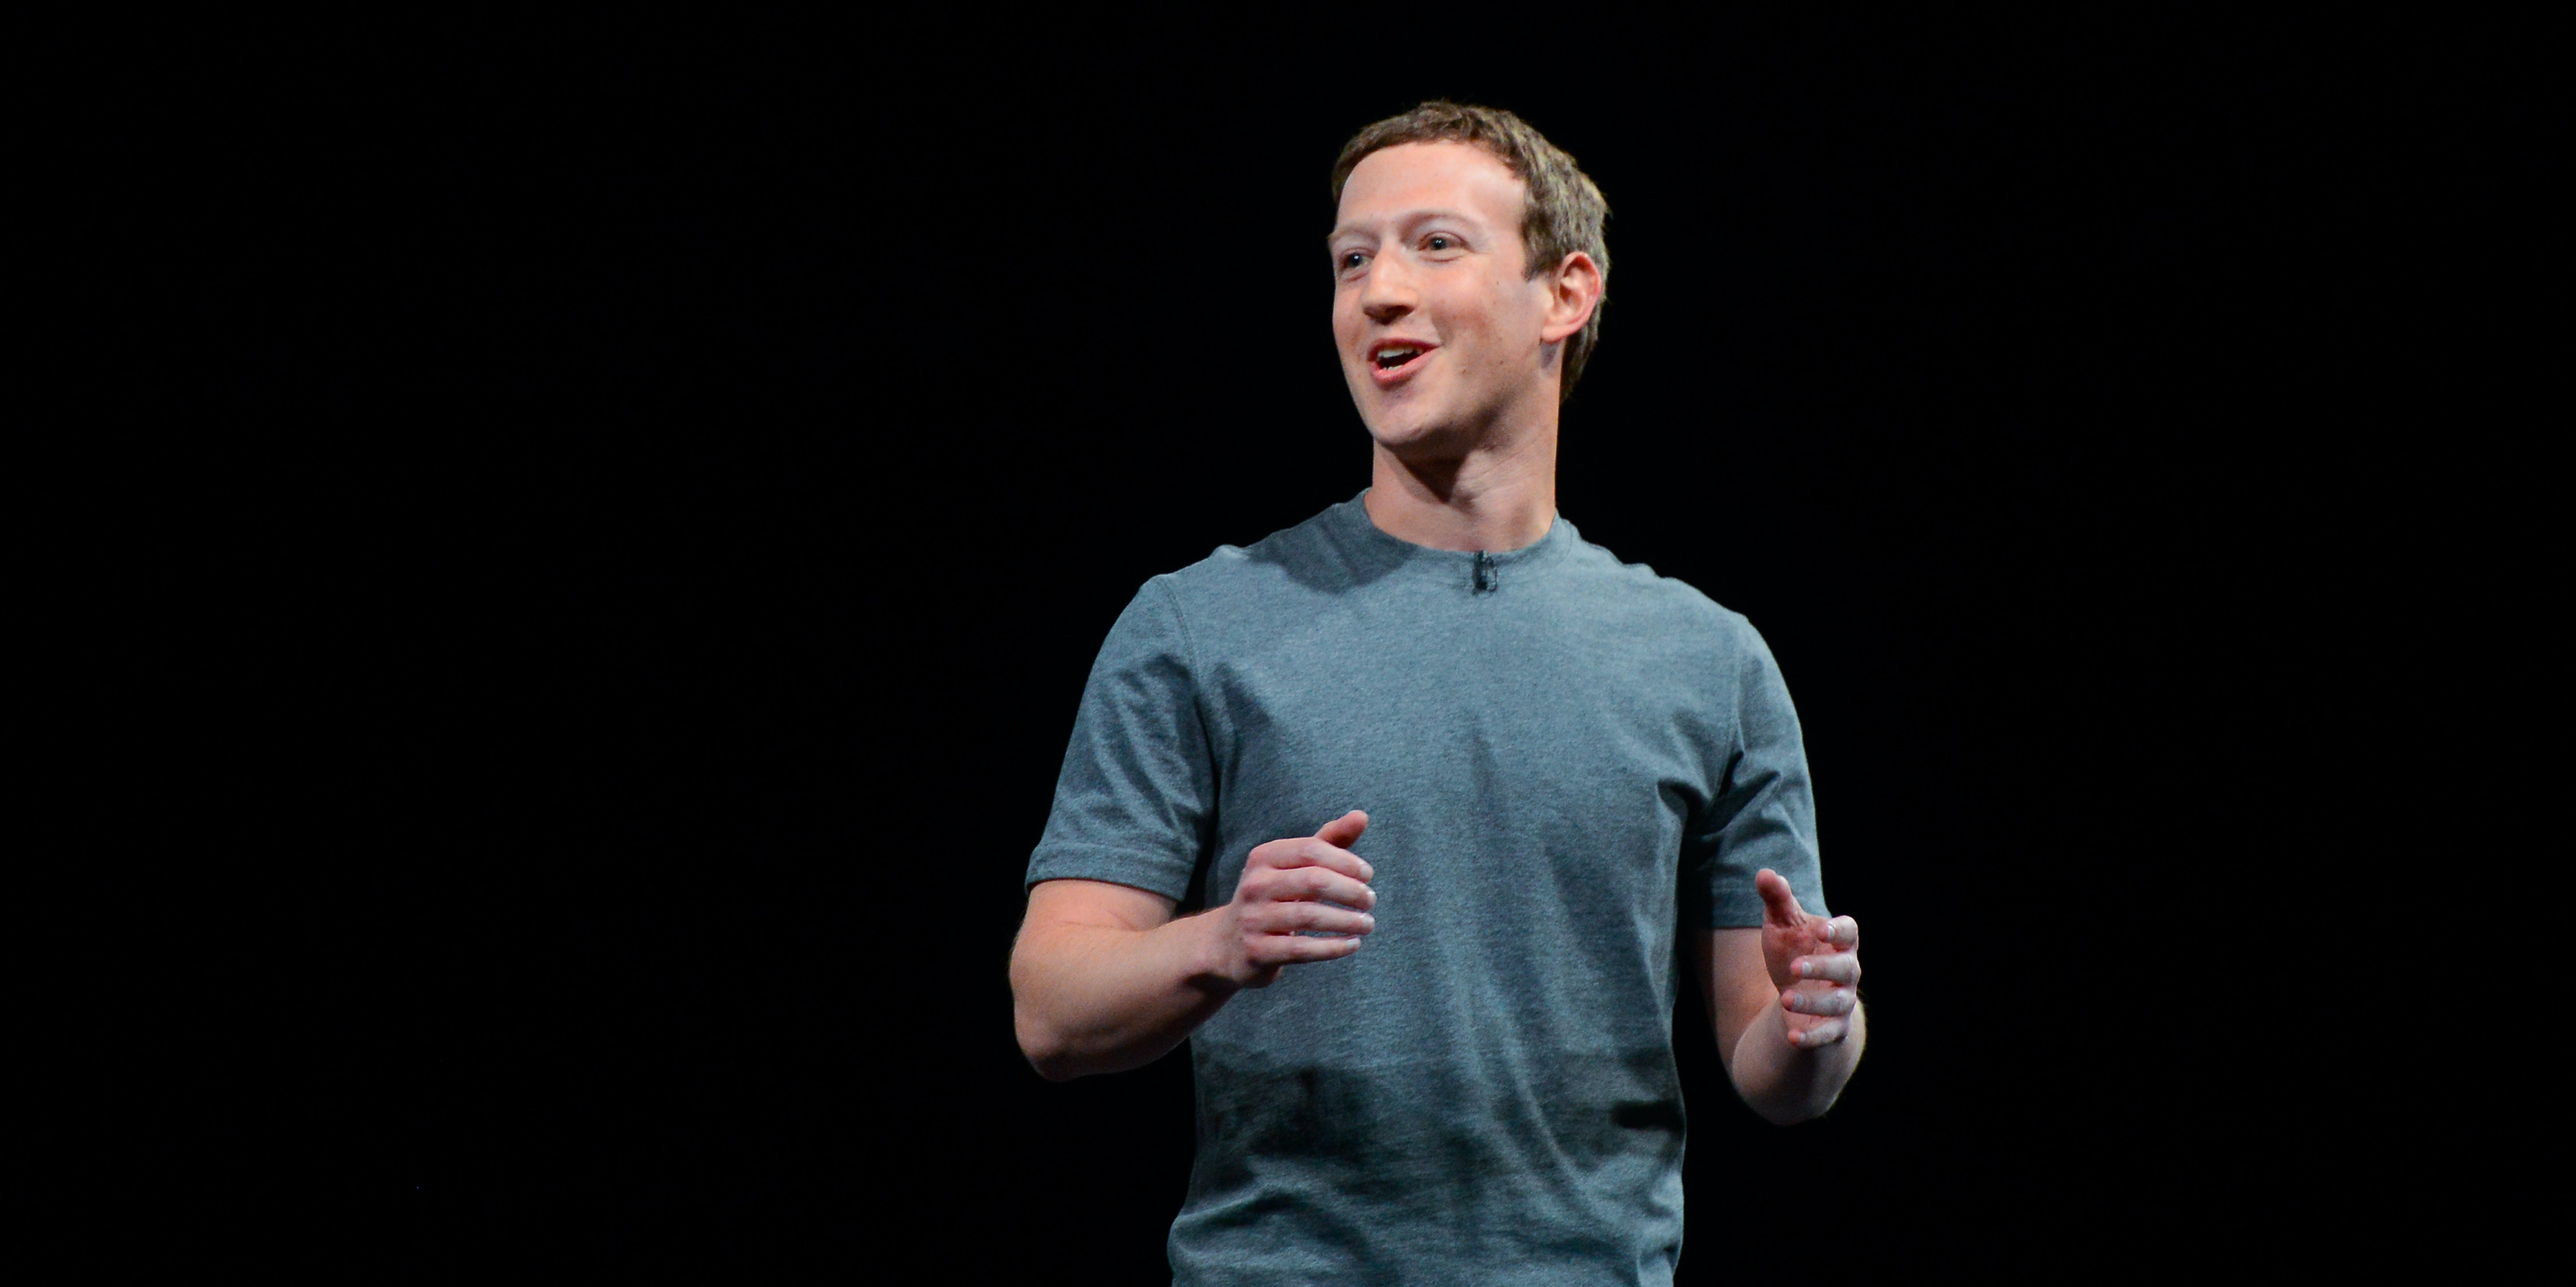 Founder and CEO of Facebook Mark Zuckerber gives his speach during the presentation of the new Samsung Galaxy S7 and Samsung Galaxy S7 edge on February 21, 2016 in Barcelona, Spain. The annual Mobile World Congress will start tomorrow and will host some of the world's largst communication companies, with many unveiling their last phones and gadgets.